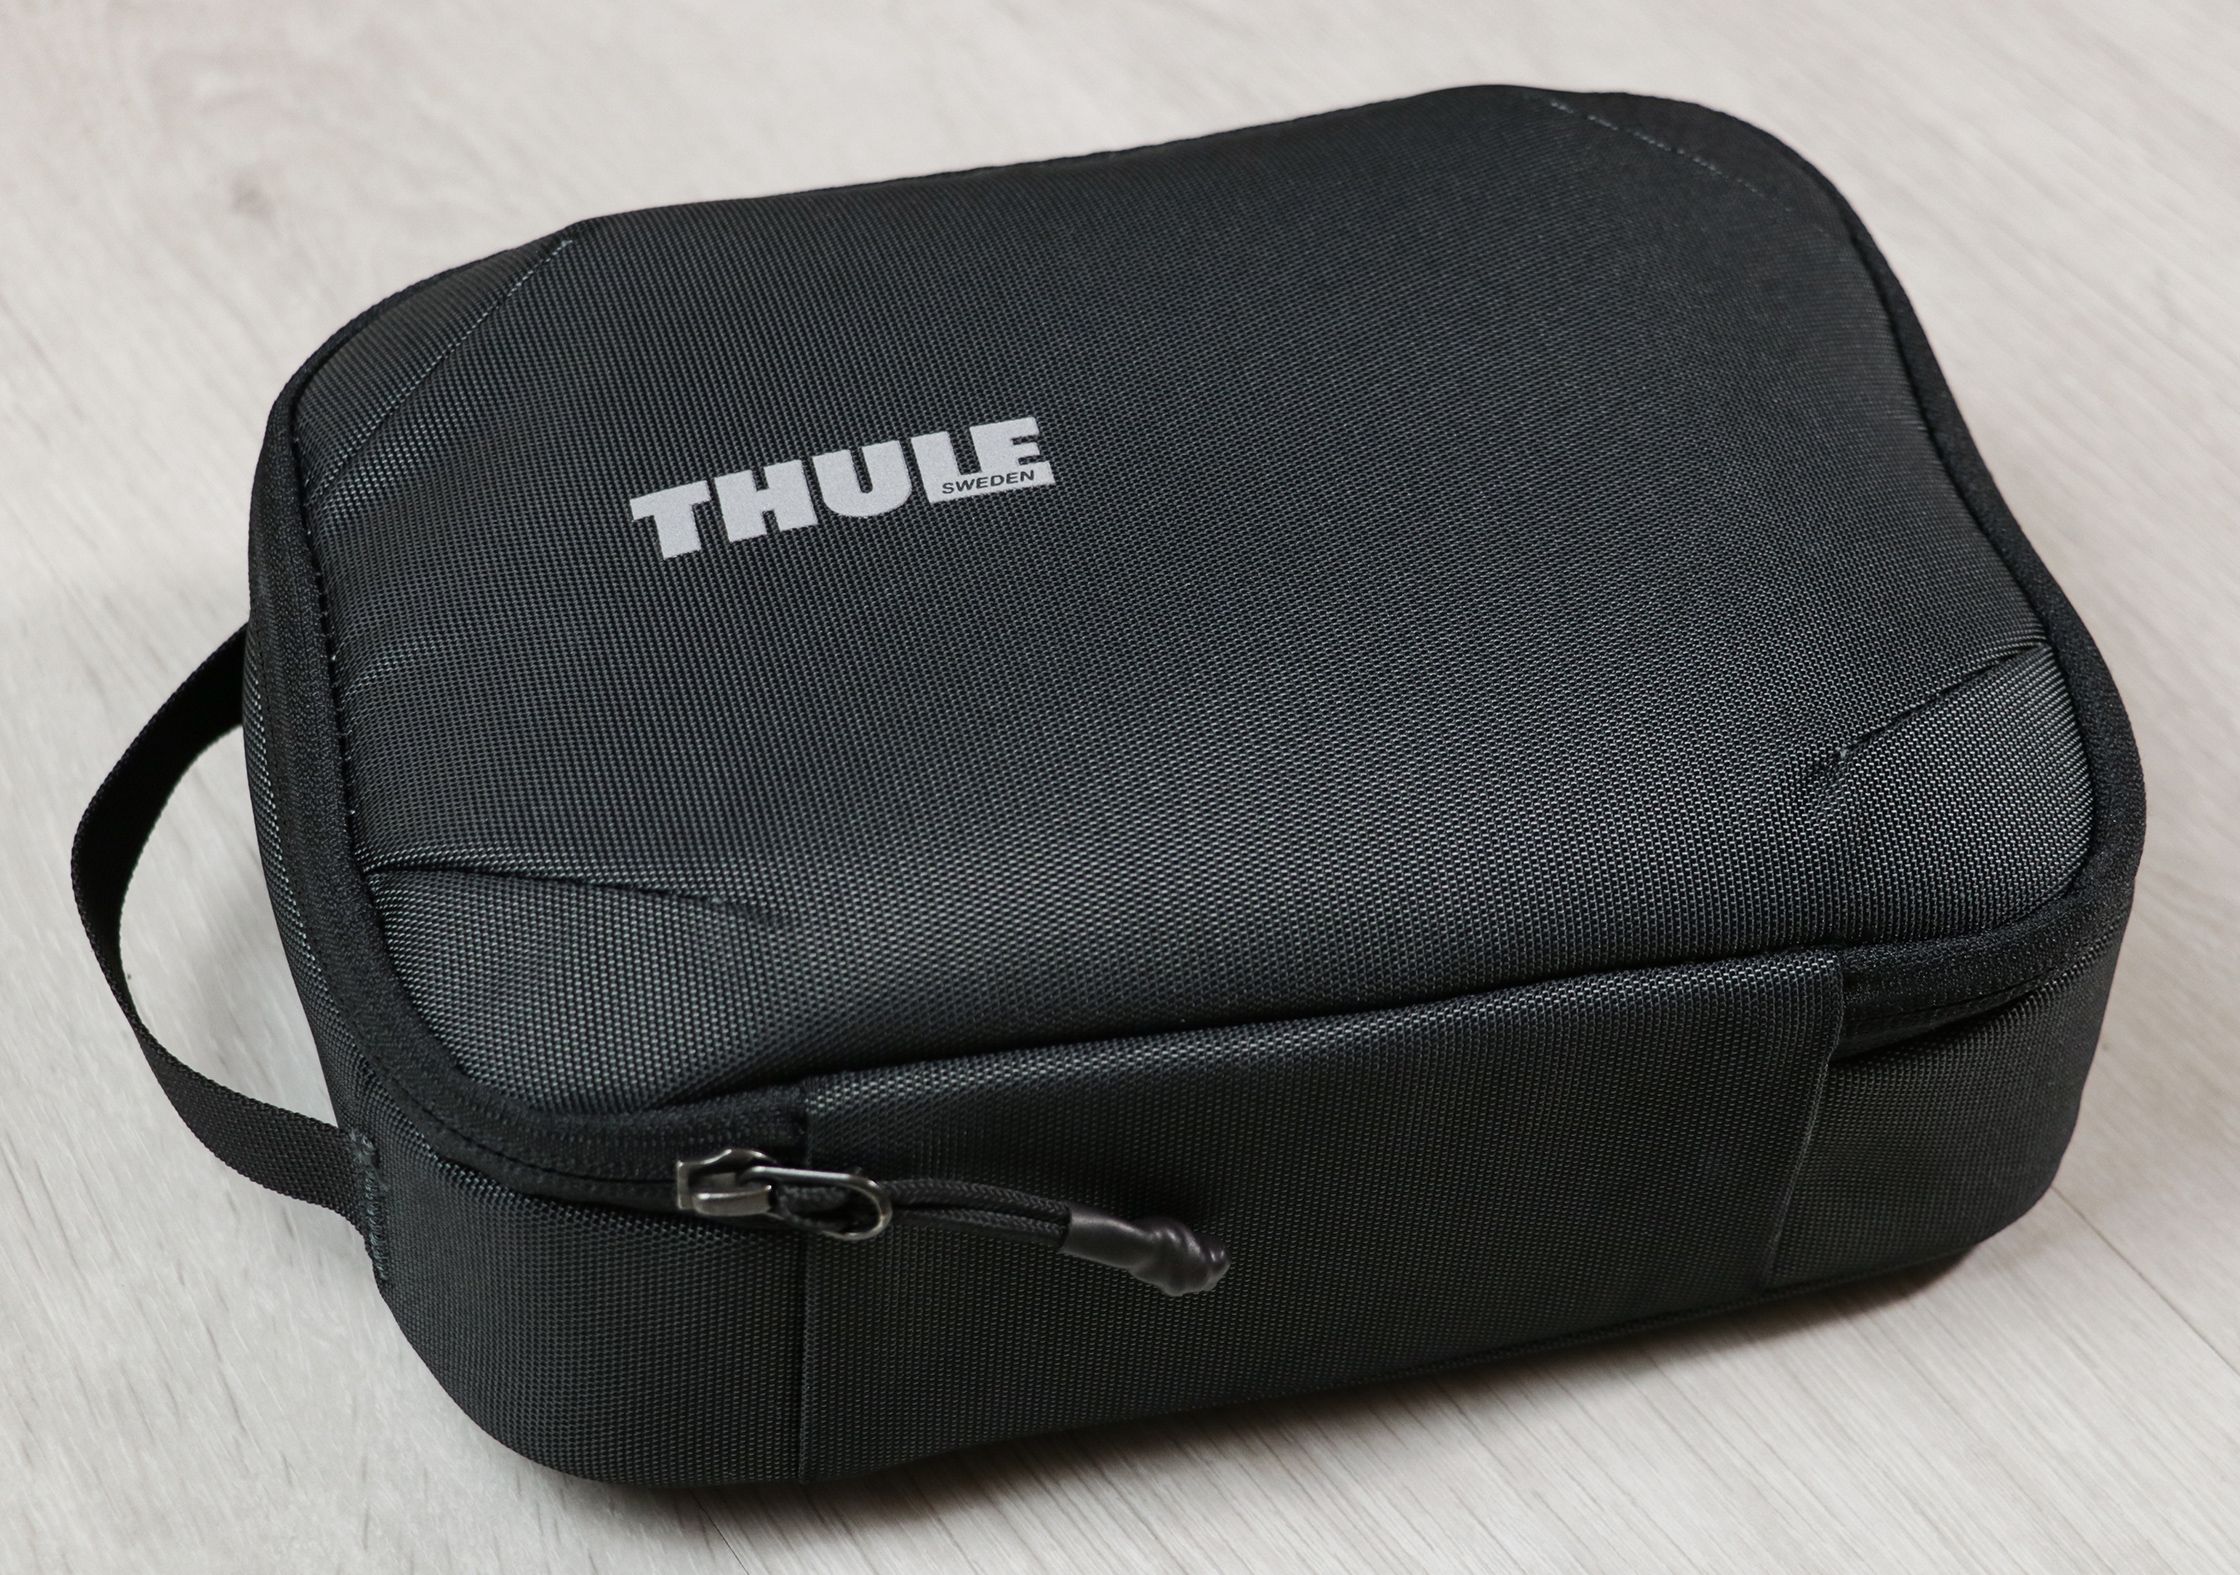 Thule Subterra Powershuttle Plus Minimal Design